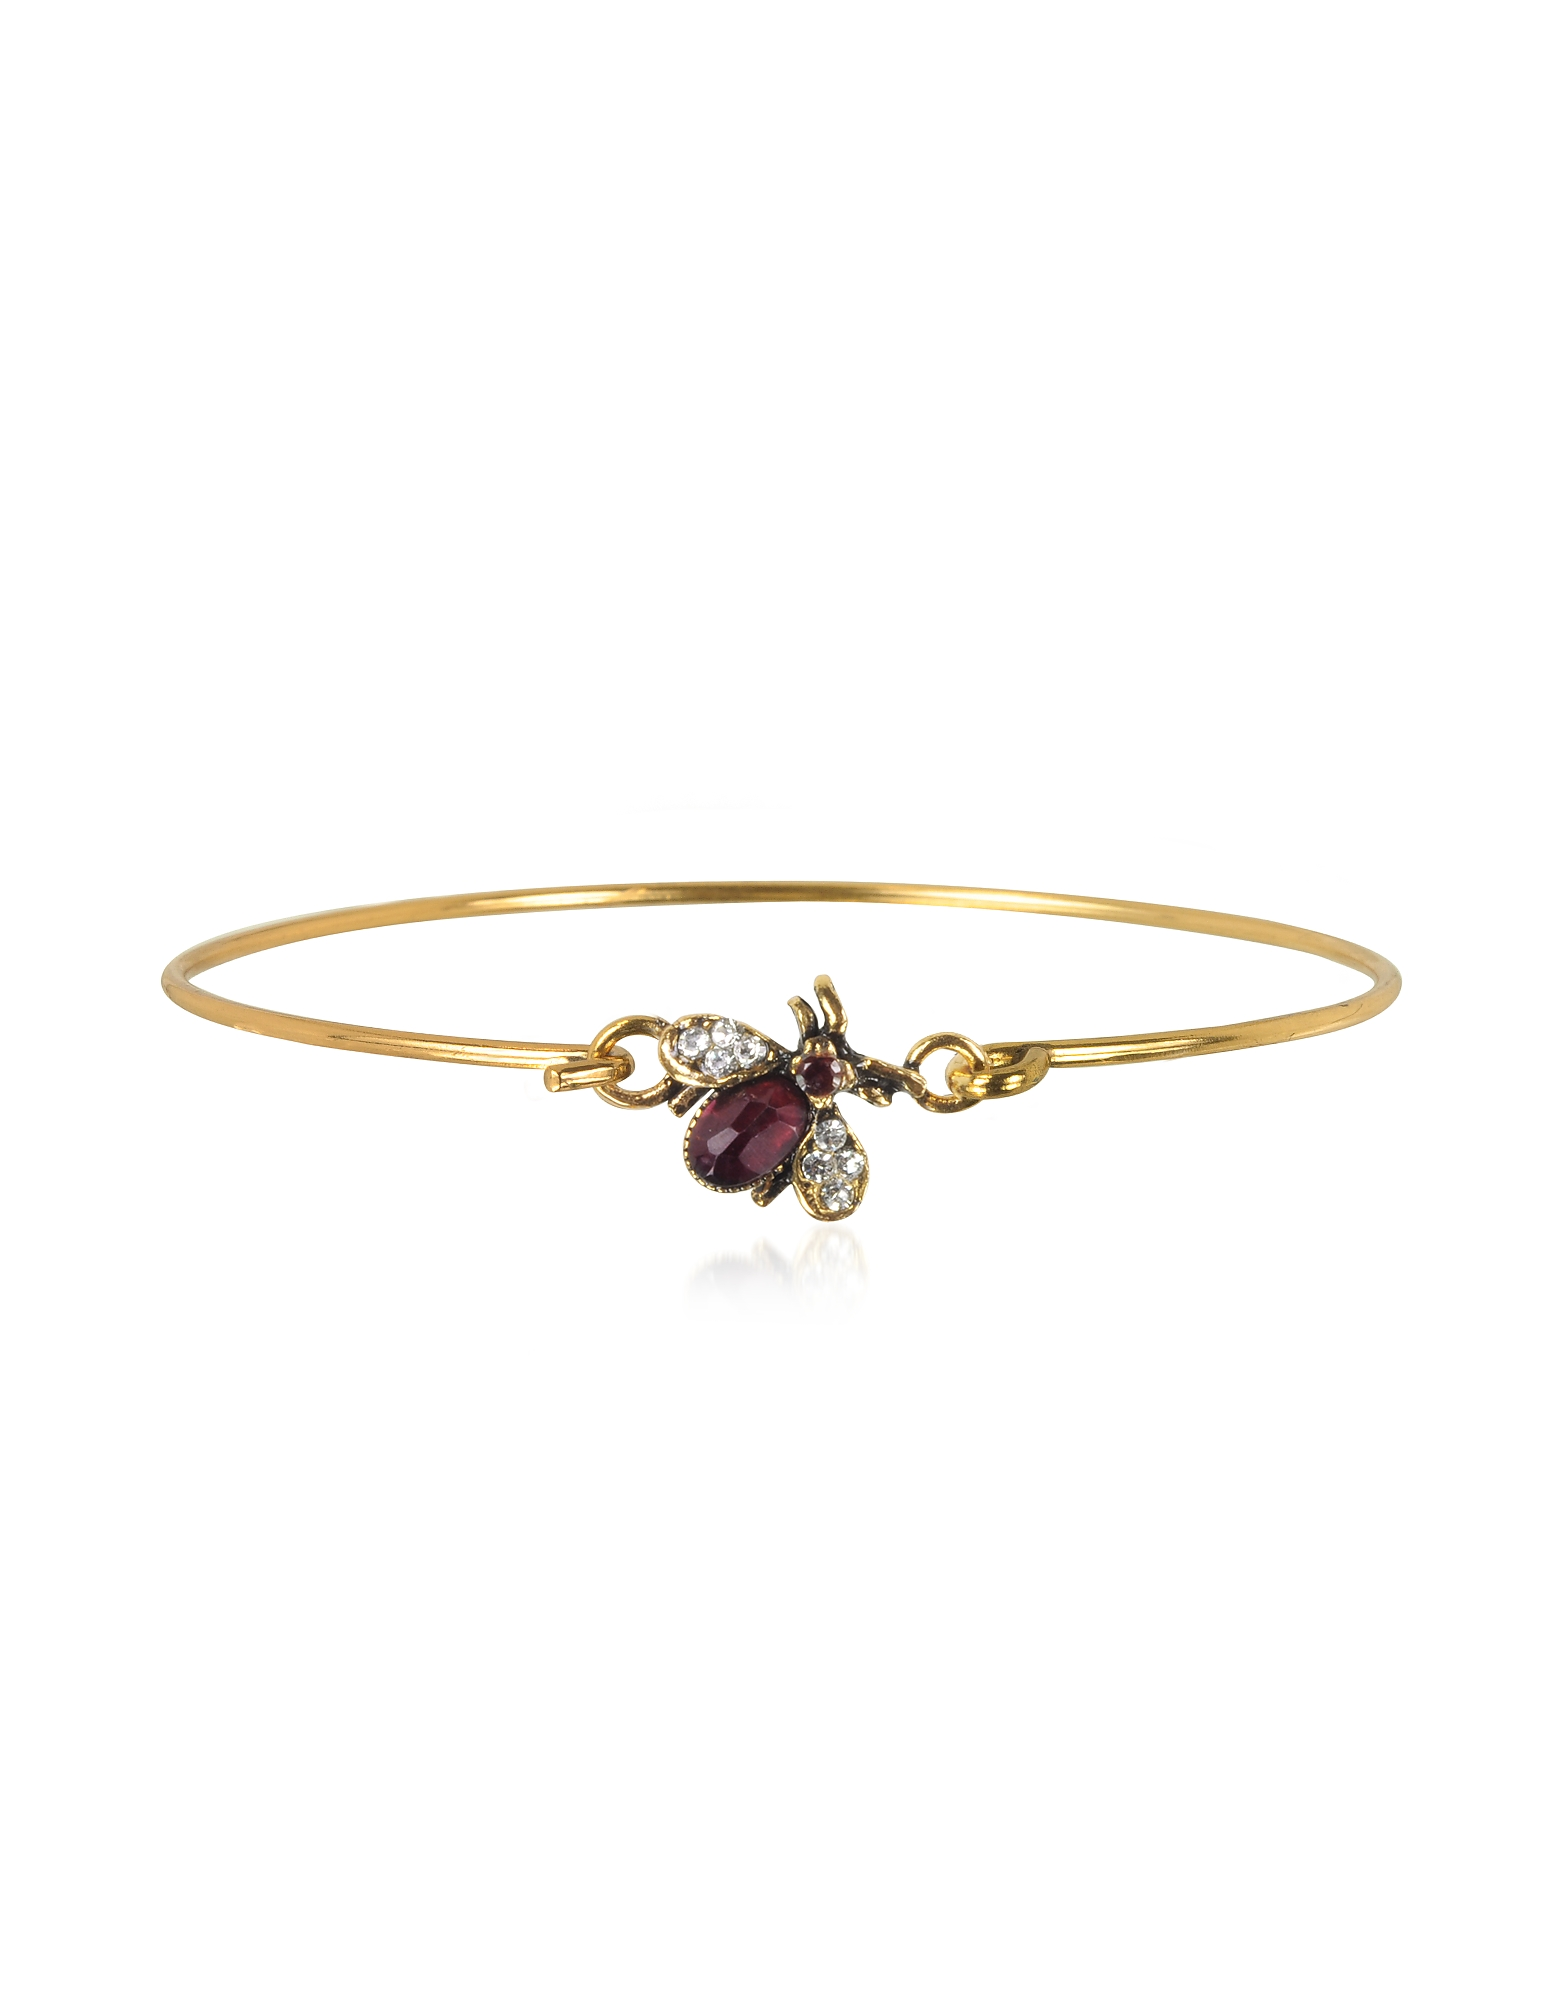 Alcozer & J Bracelets, Brass and Crystals Moschina Bangle